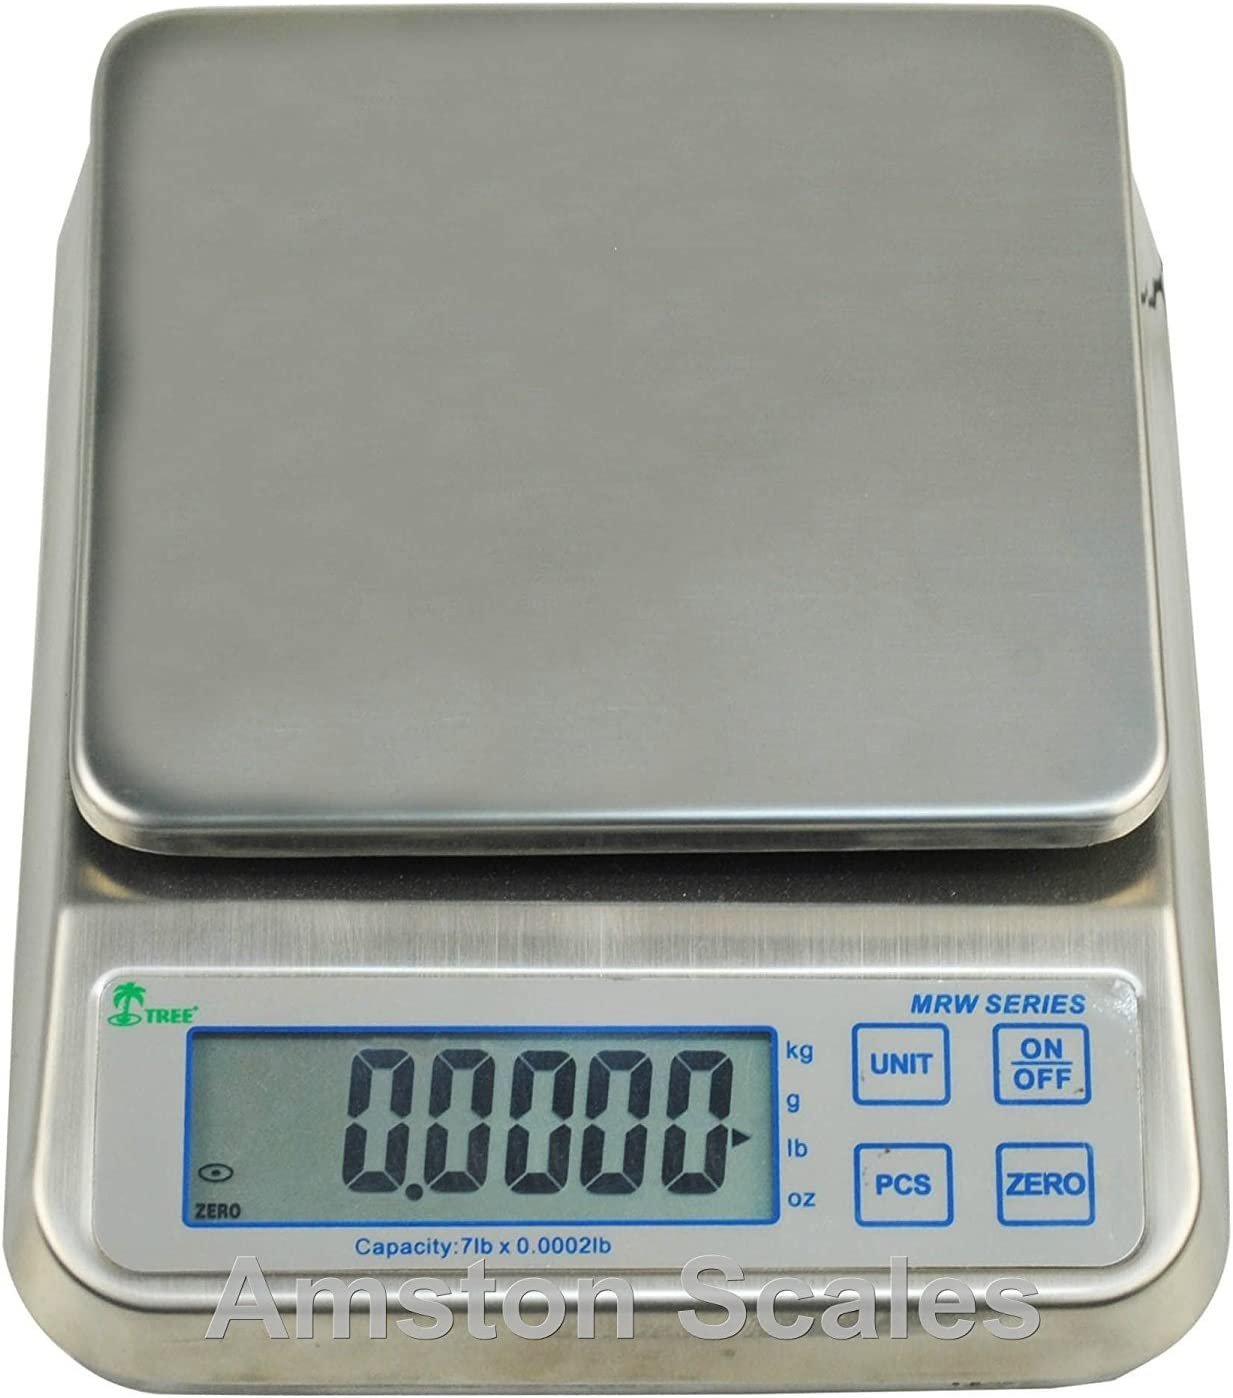 LW Measurements PORTION CONTROL FOOD KITCHEN 7 Lb WASHDOWN DIGITAL SCALE STAINLESS